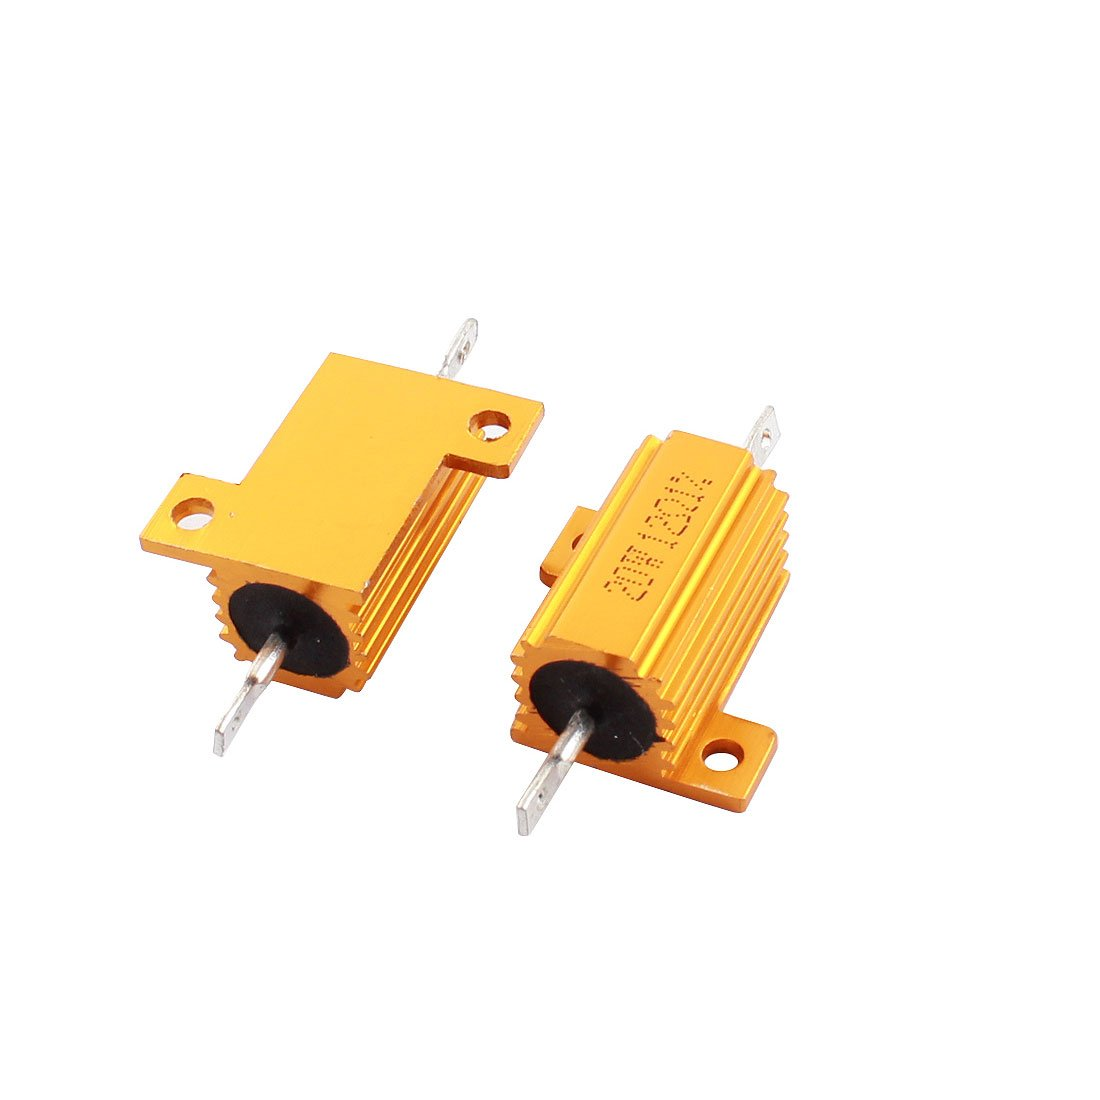 Uxcell Miami Mall a14090600ux0145 Clad Max 79% OFF Wire Wound x Power 2 Resistors 20W